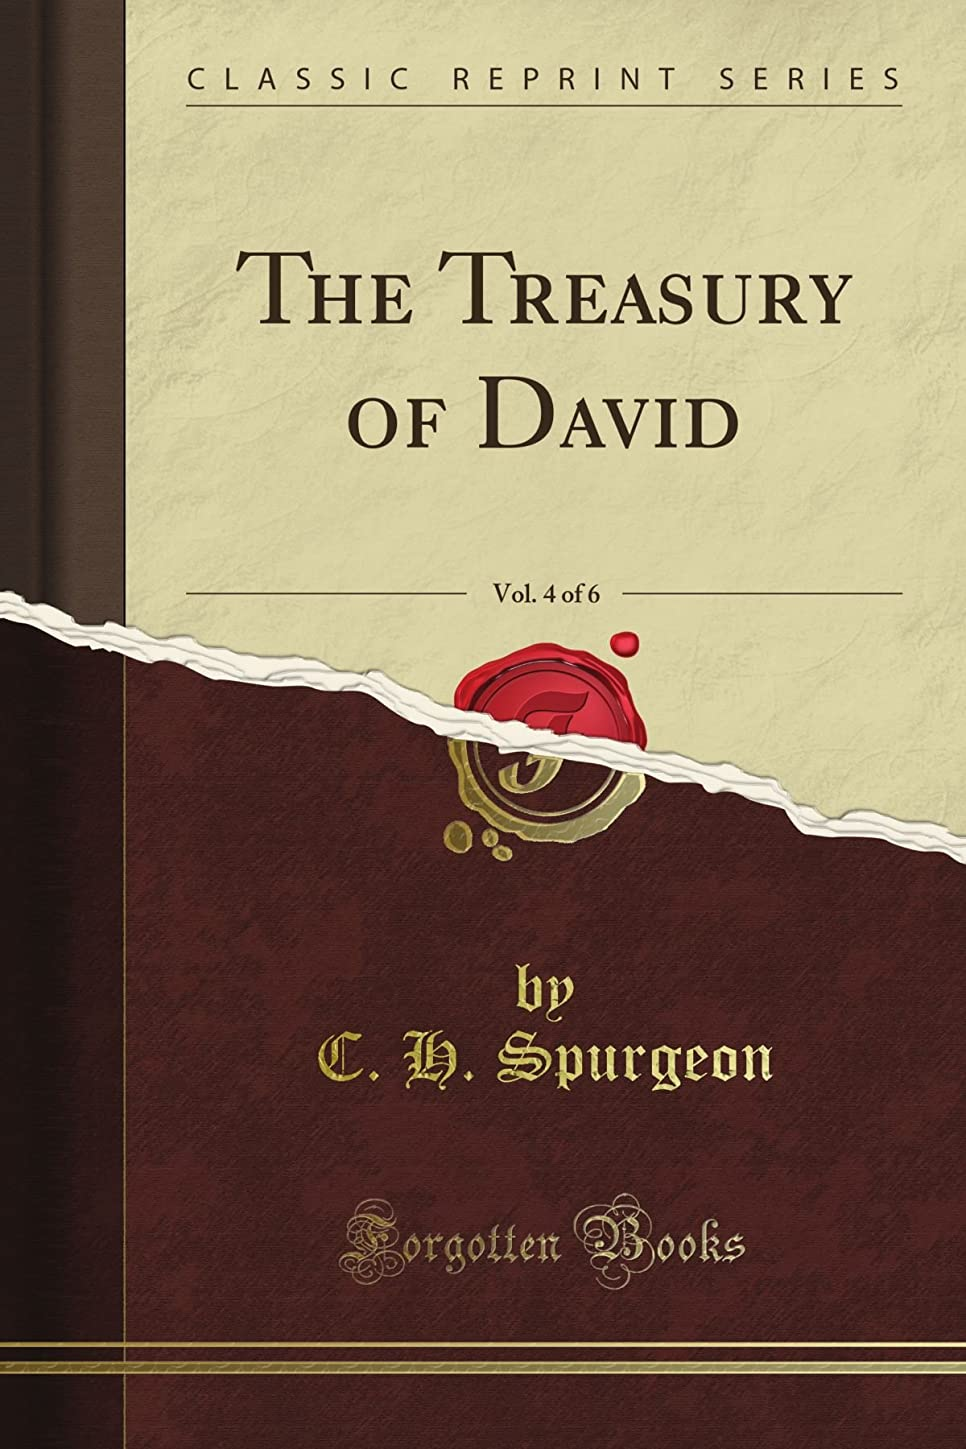 熱心なめ言葉テストThe Treasury of David, Vol. 4 of 6 (Classic Reprint)